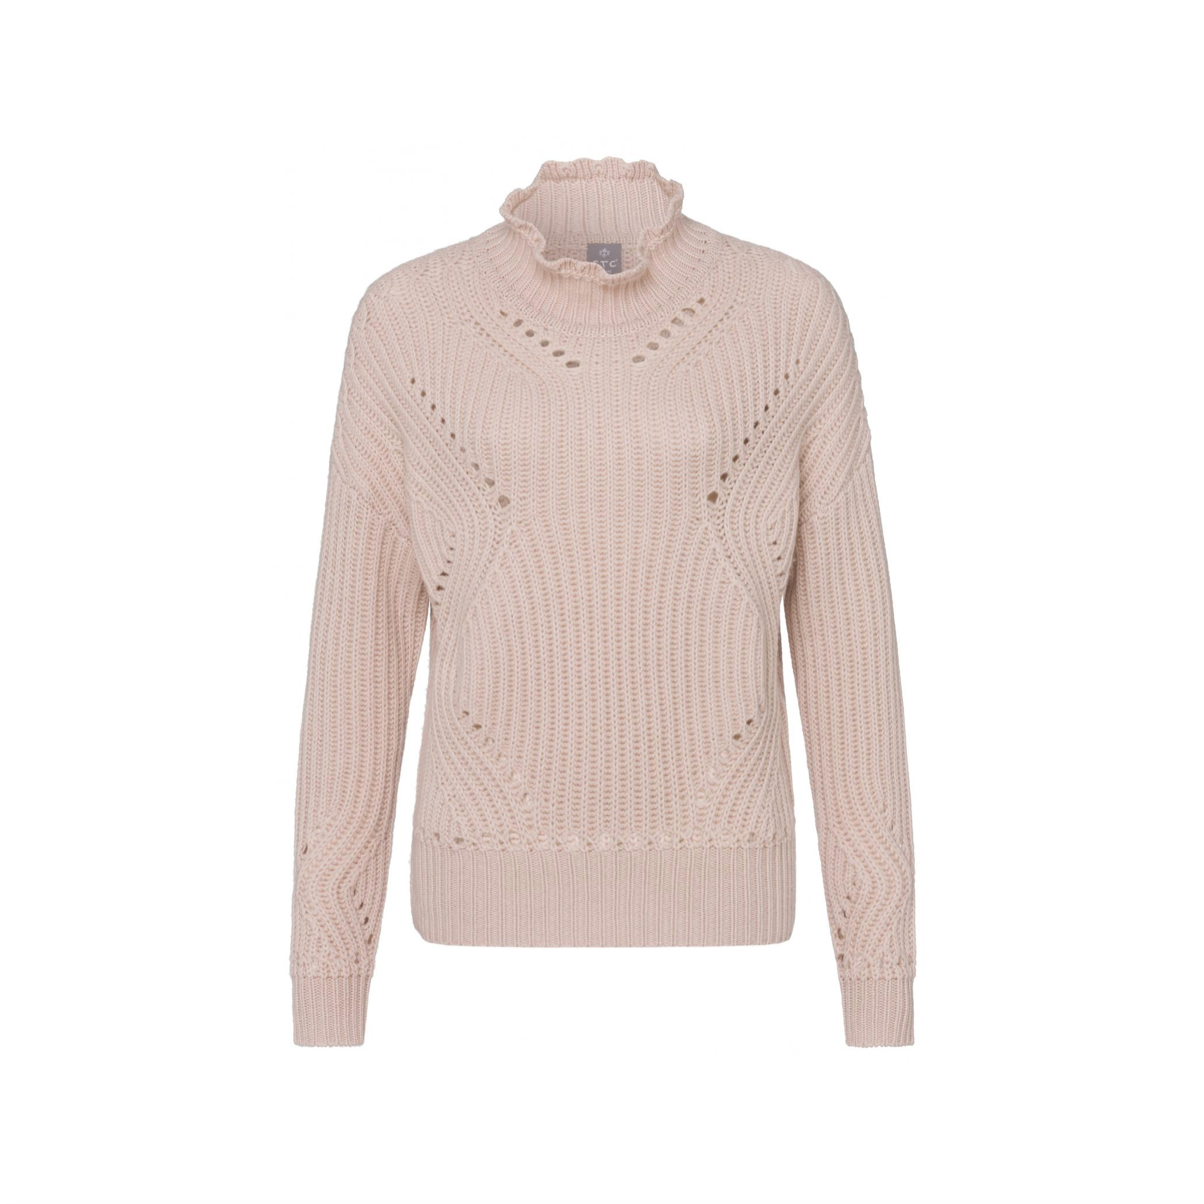 SWEATER WITH STAND-UP COLLAR